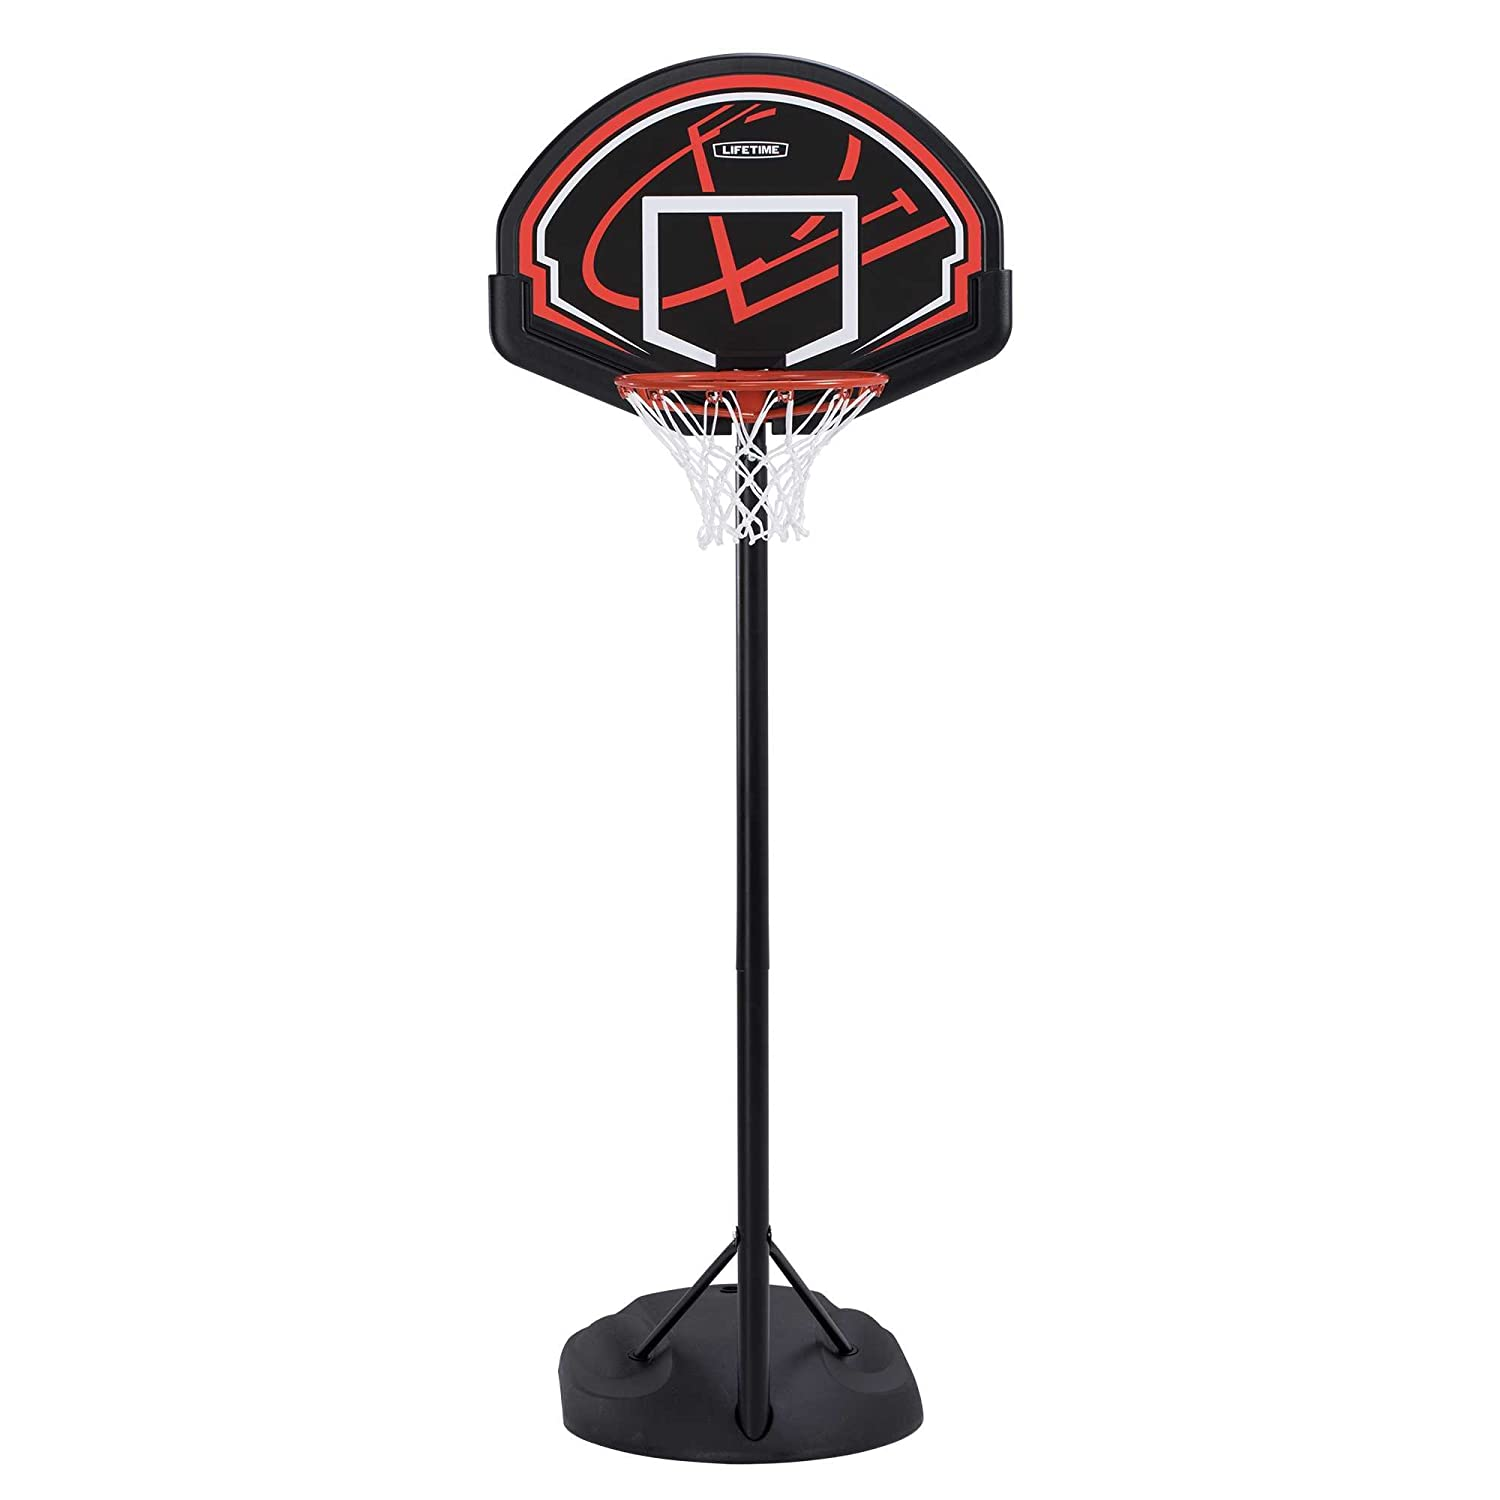 Top 8 Best Basketball Hoop for Kids Reviews in 2020 2